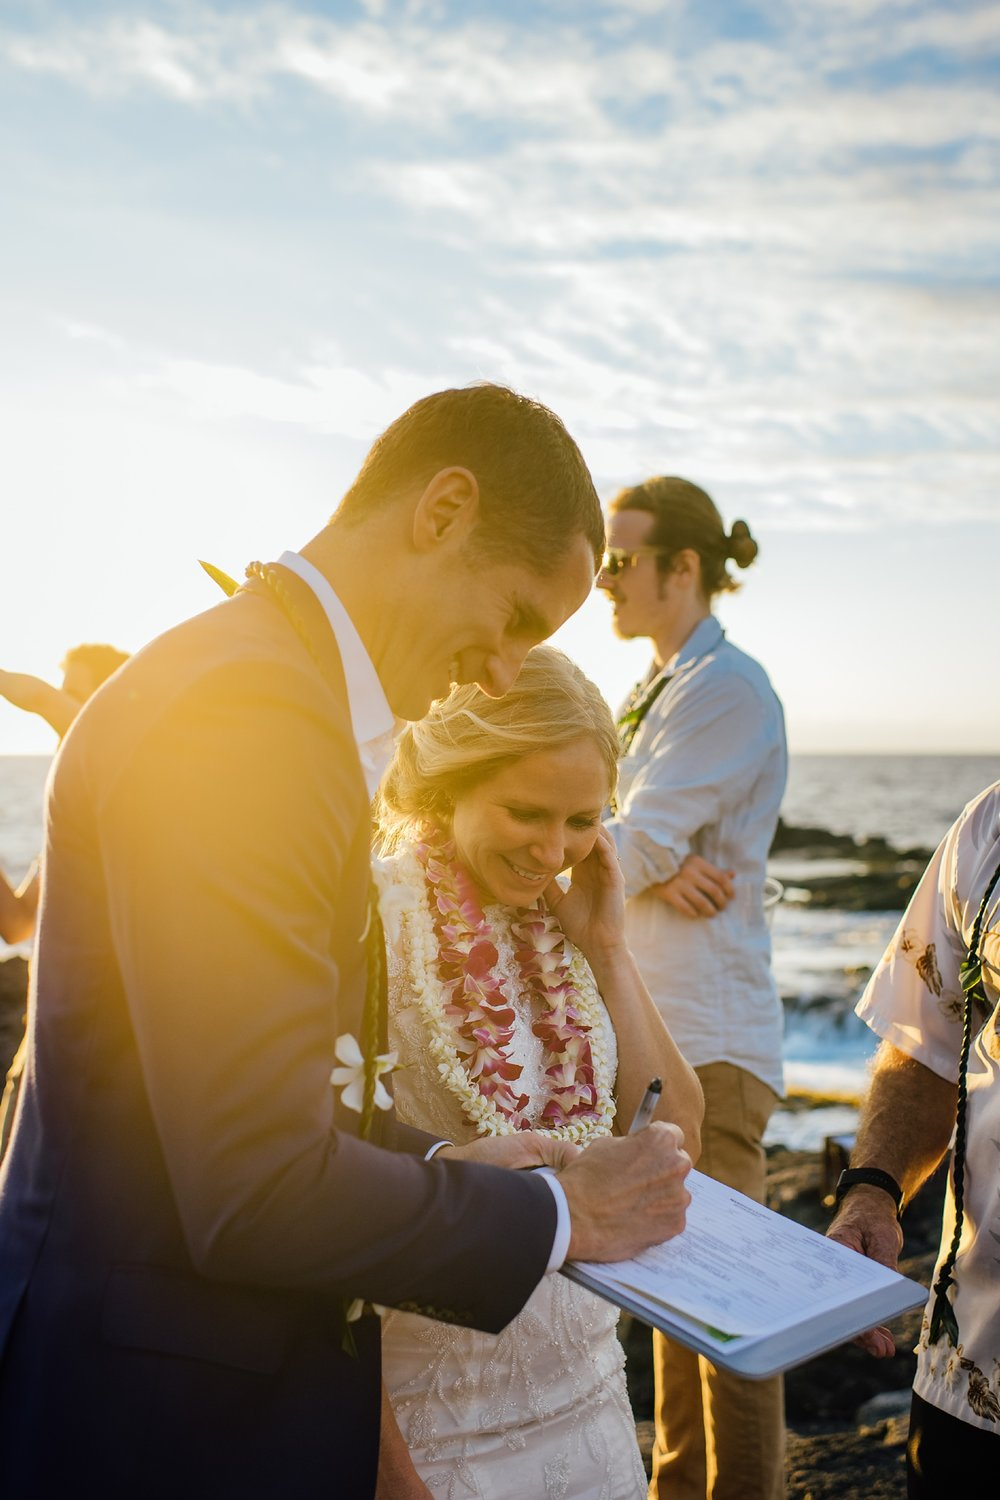 singing marriage certificate pine trees beach wedding